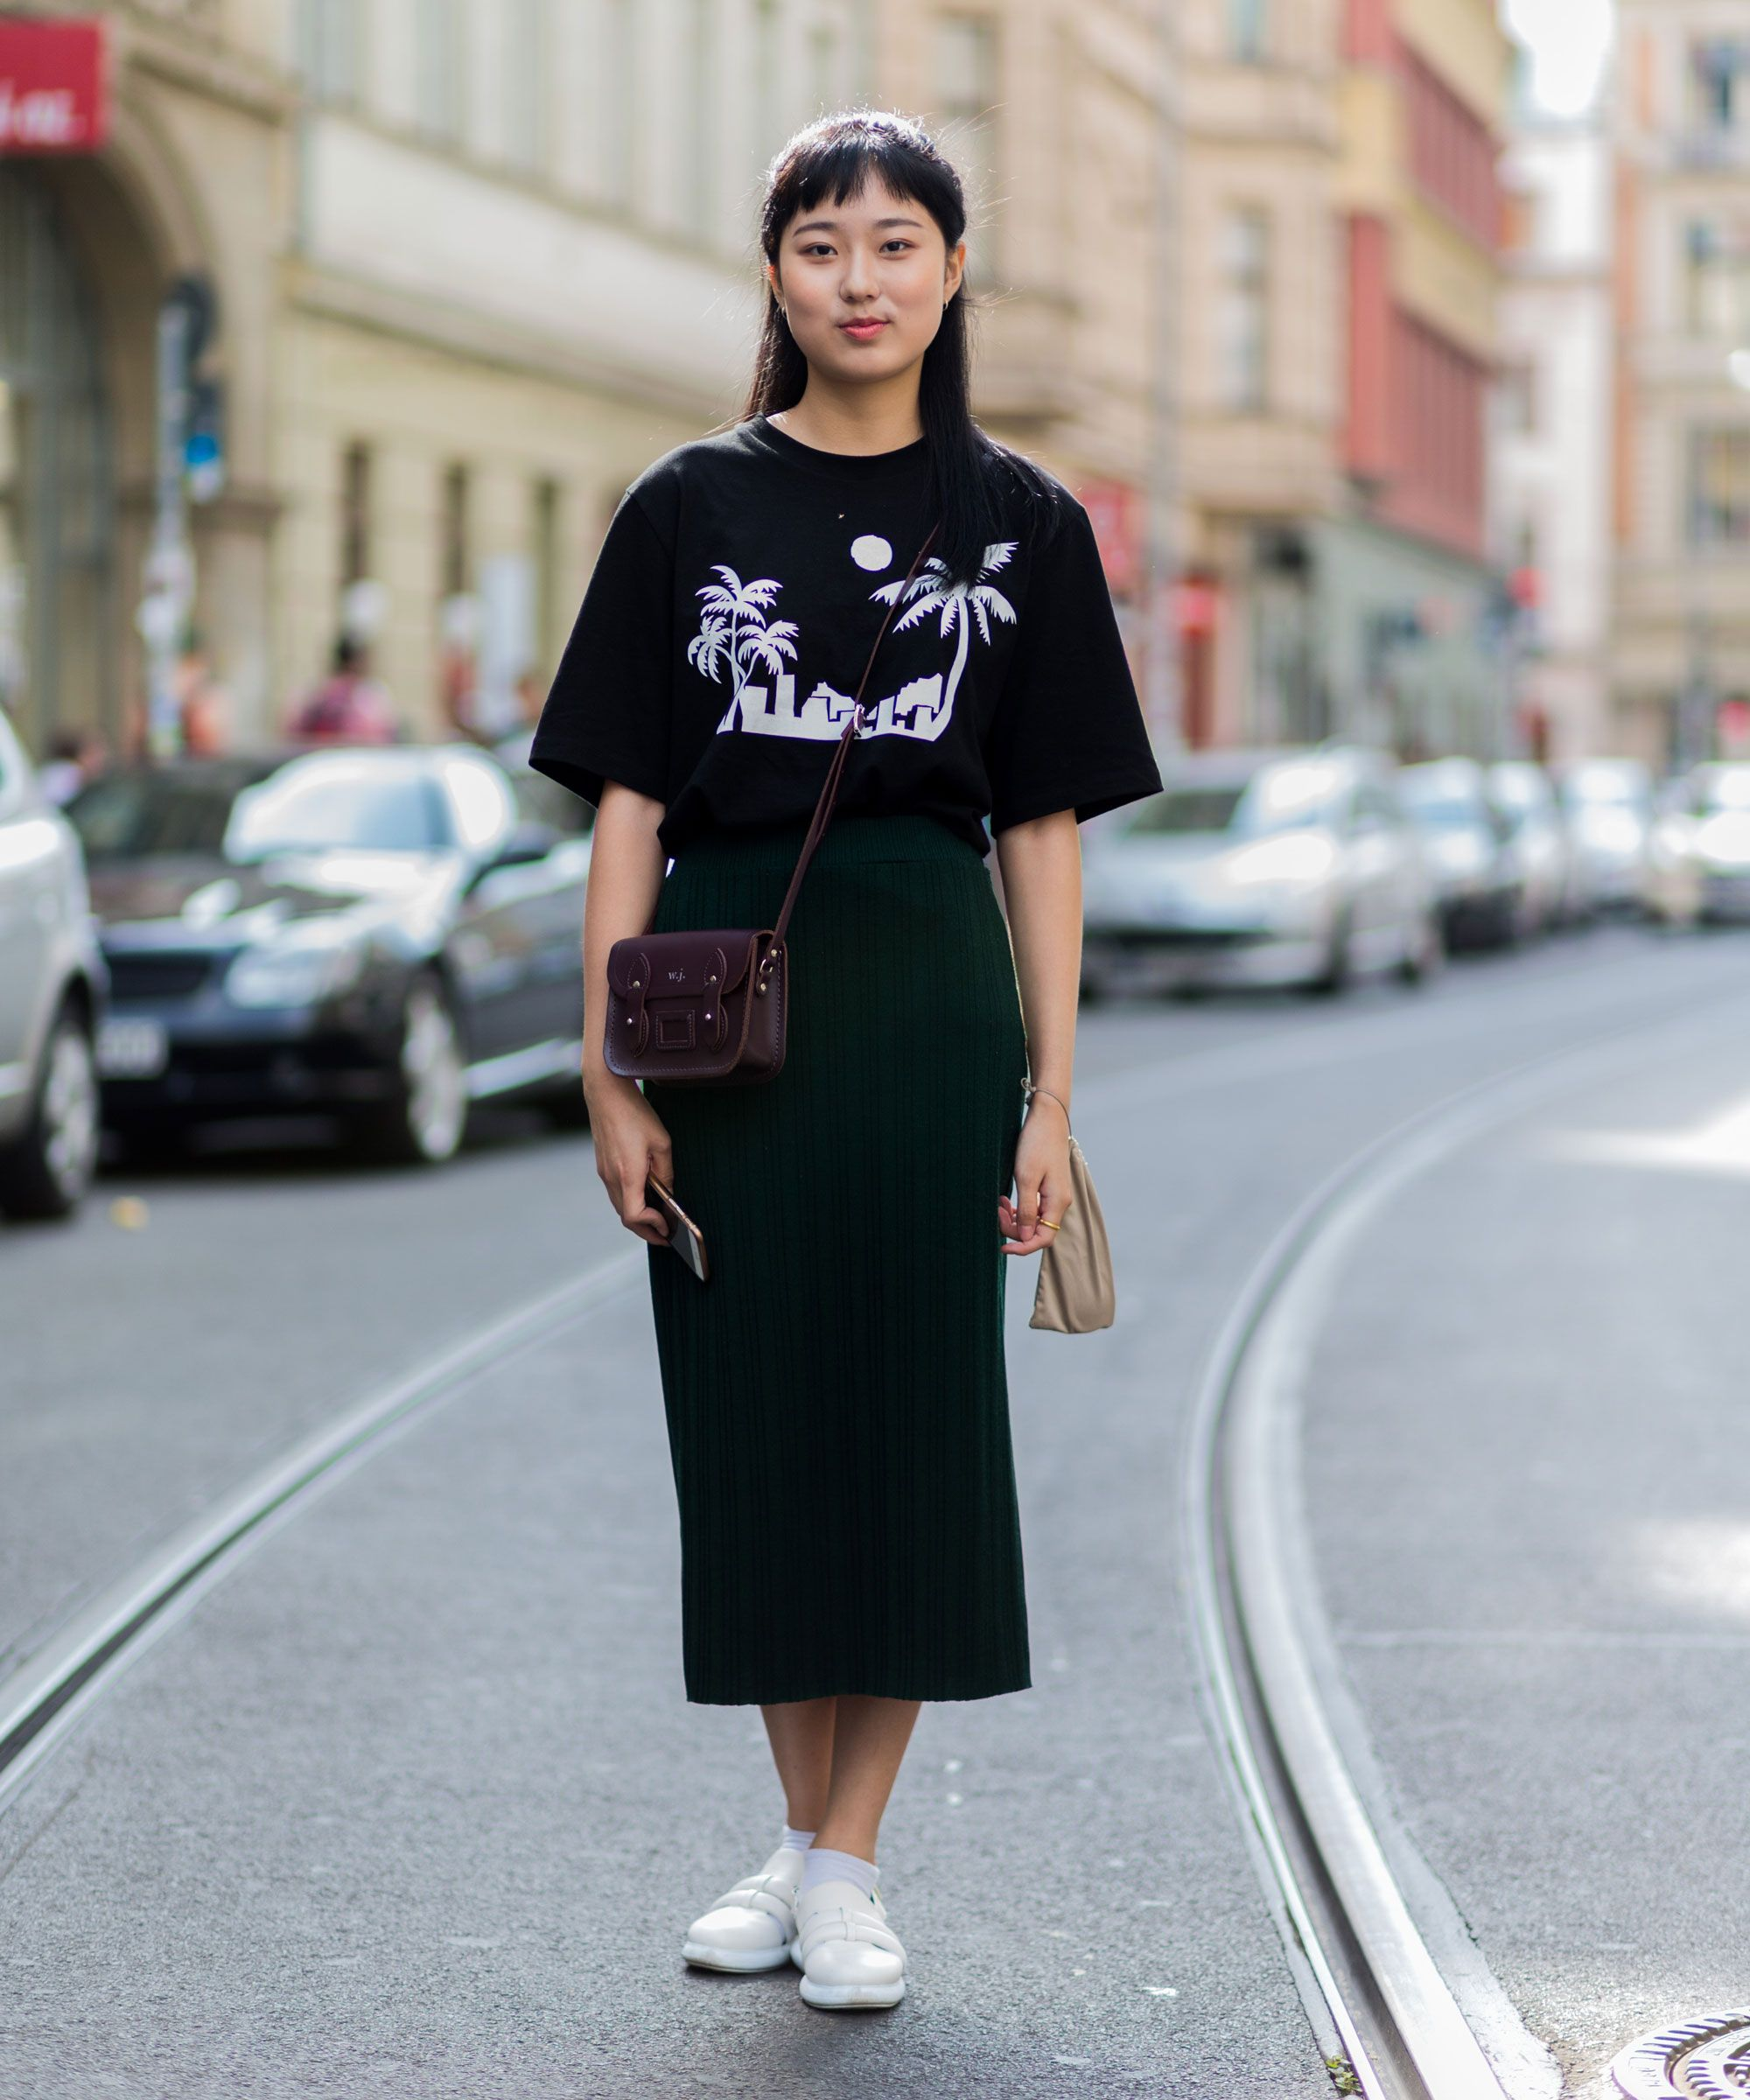 35eeea2a86 How To Wear The Contents Of Your T-Shirt Drawer The Fashion Week Way ...